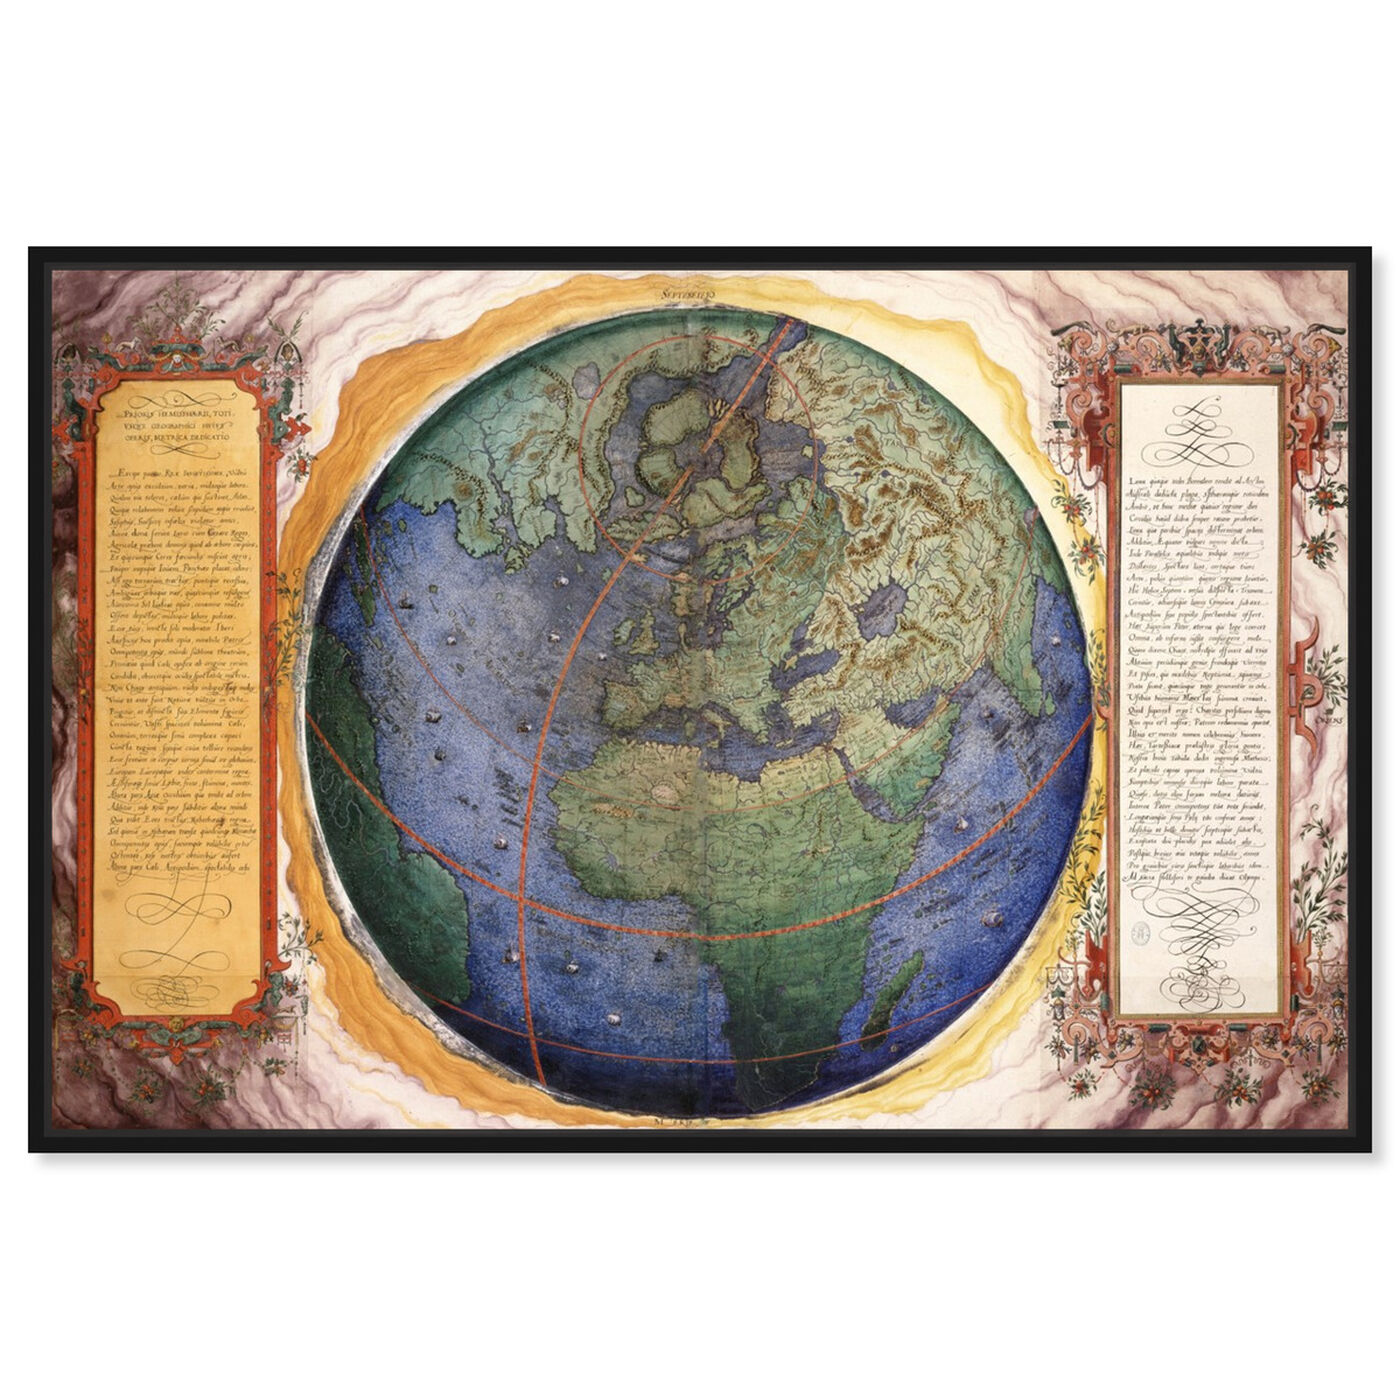 Front view of Prioris Hemisphaerii featuring maps and flags and world maps art.